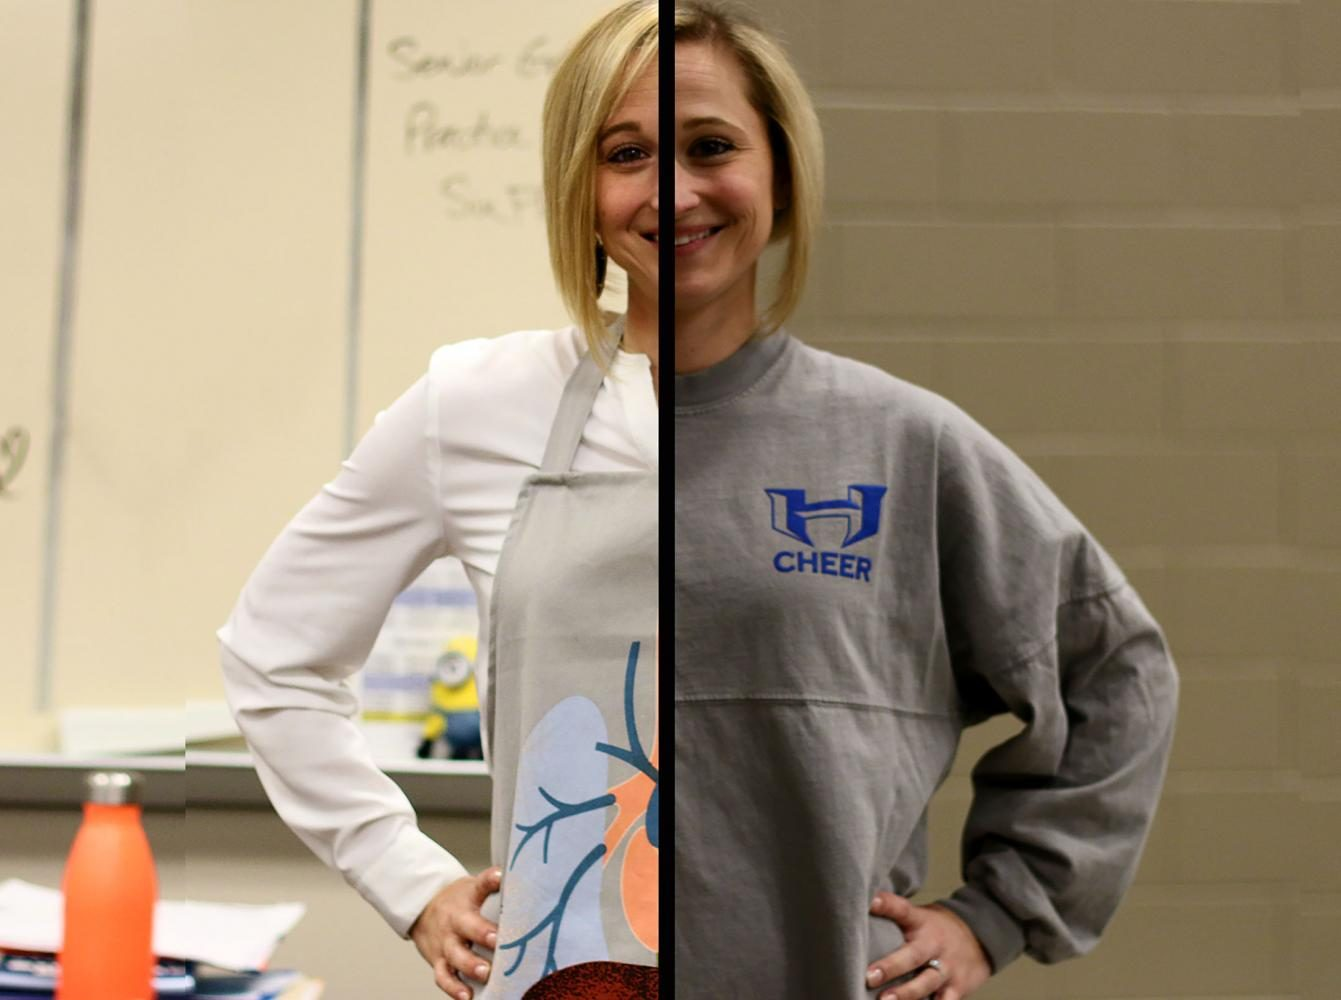 Trepagnier poses in her anatomy apron and cheer spirit wear.